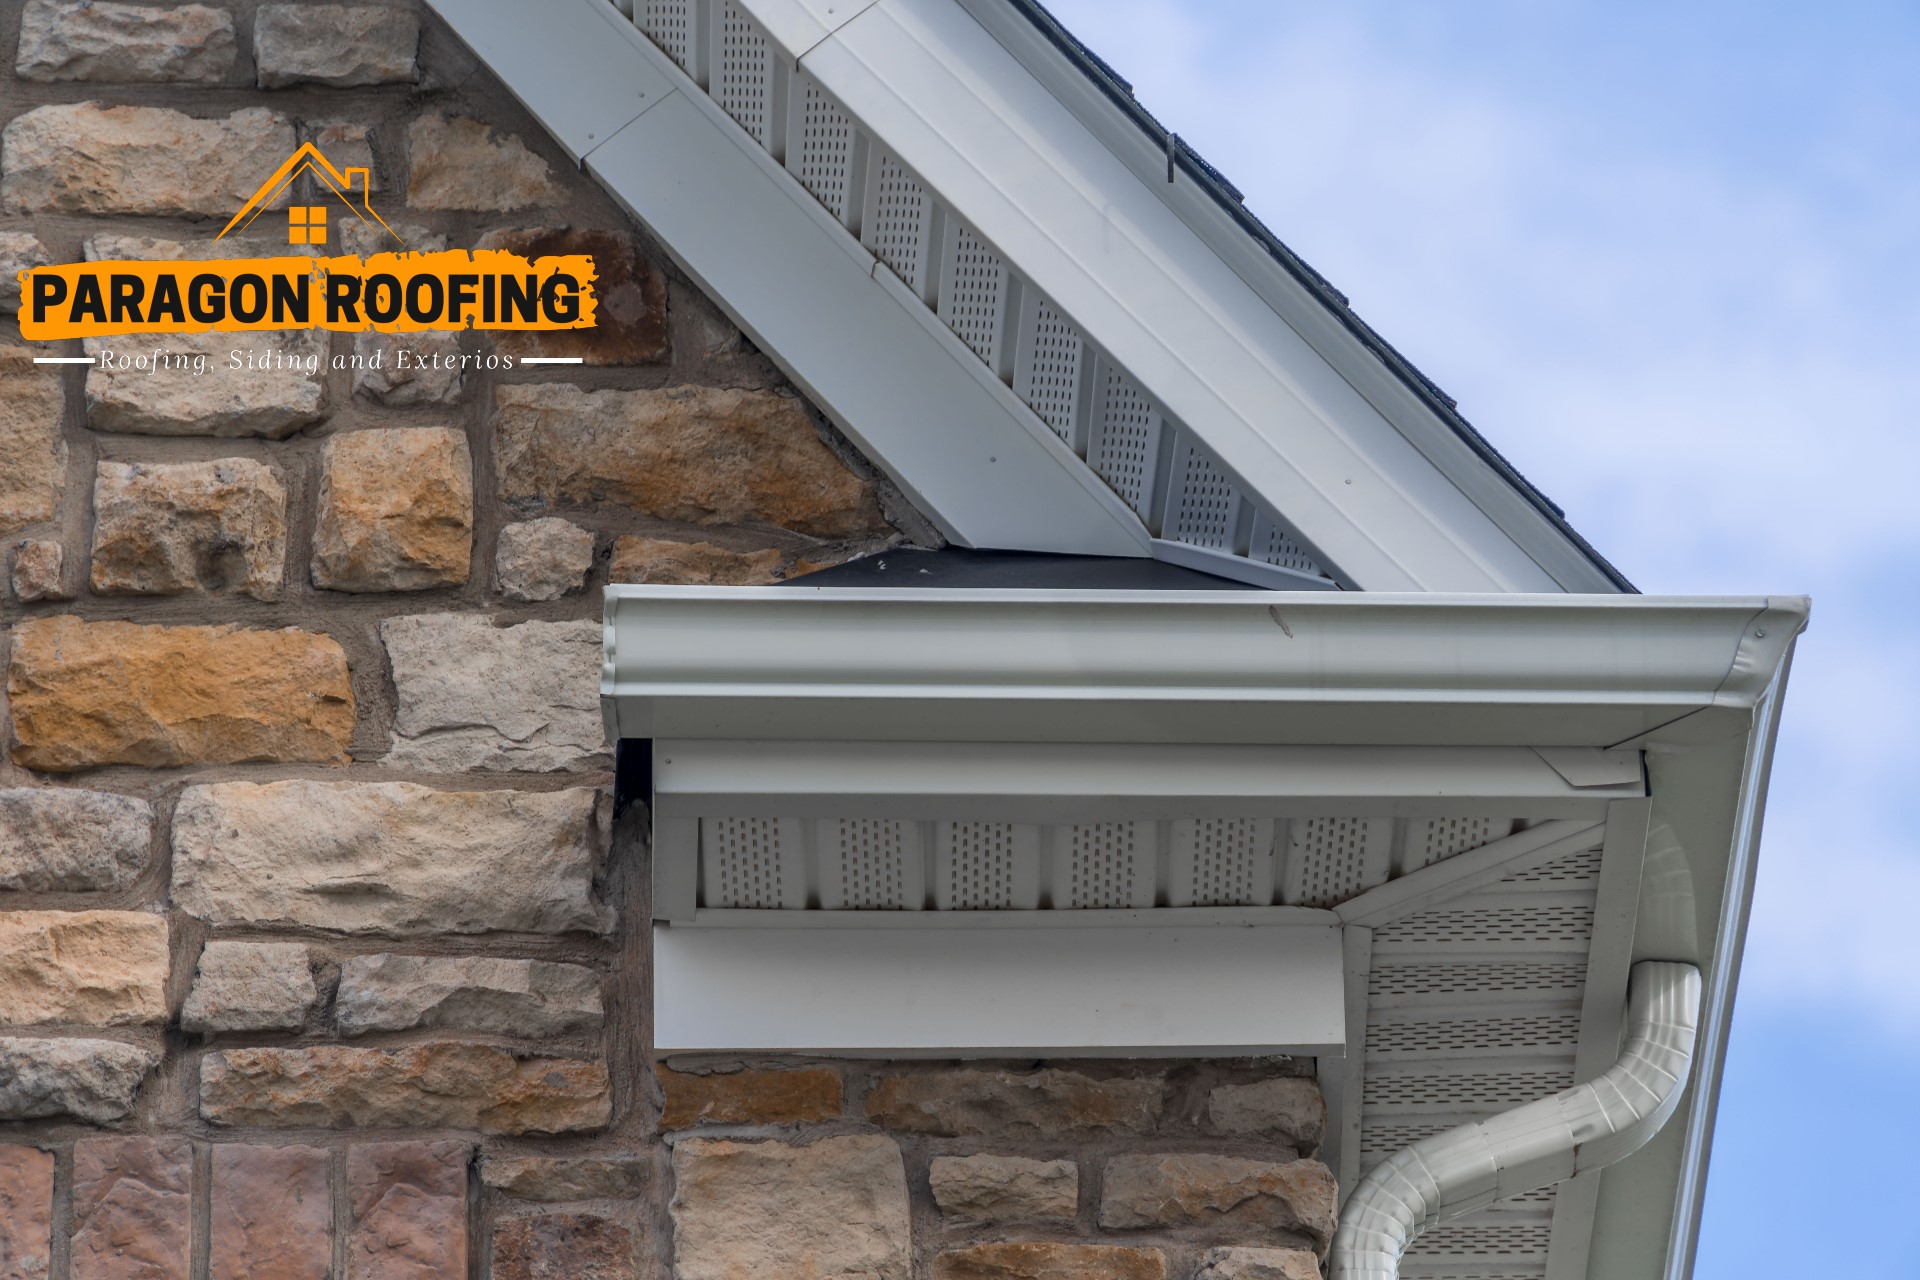 Paragon Roofing - Residential Siding Repair Services